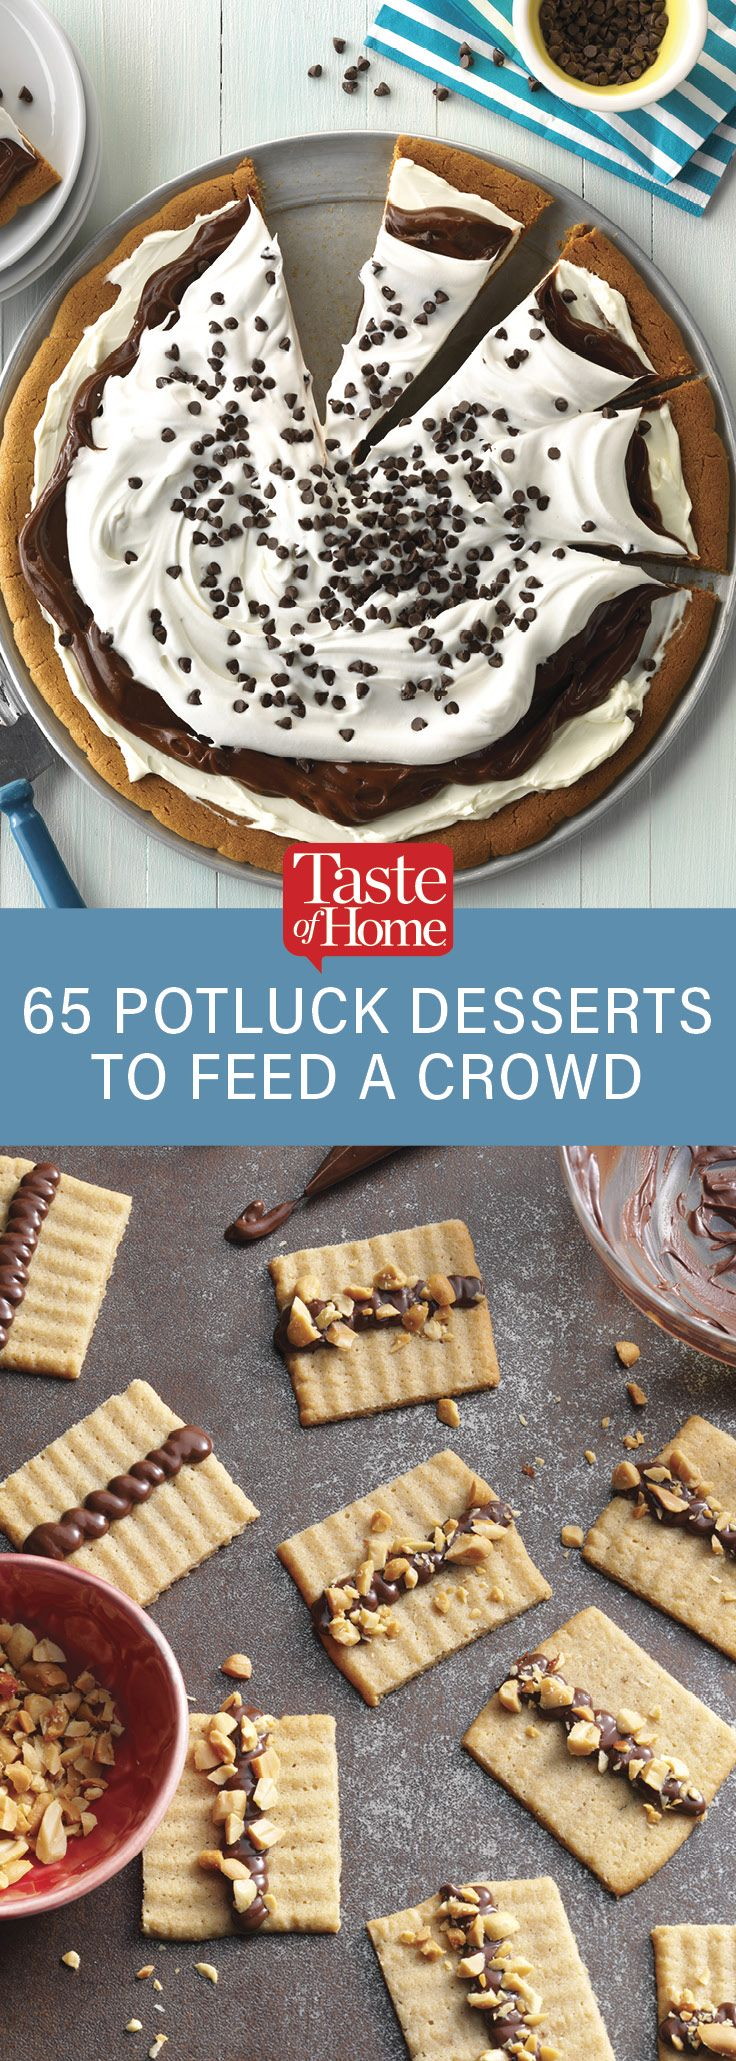 65 Potluck Desserts That Will Feed a Crowd